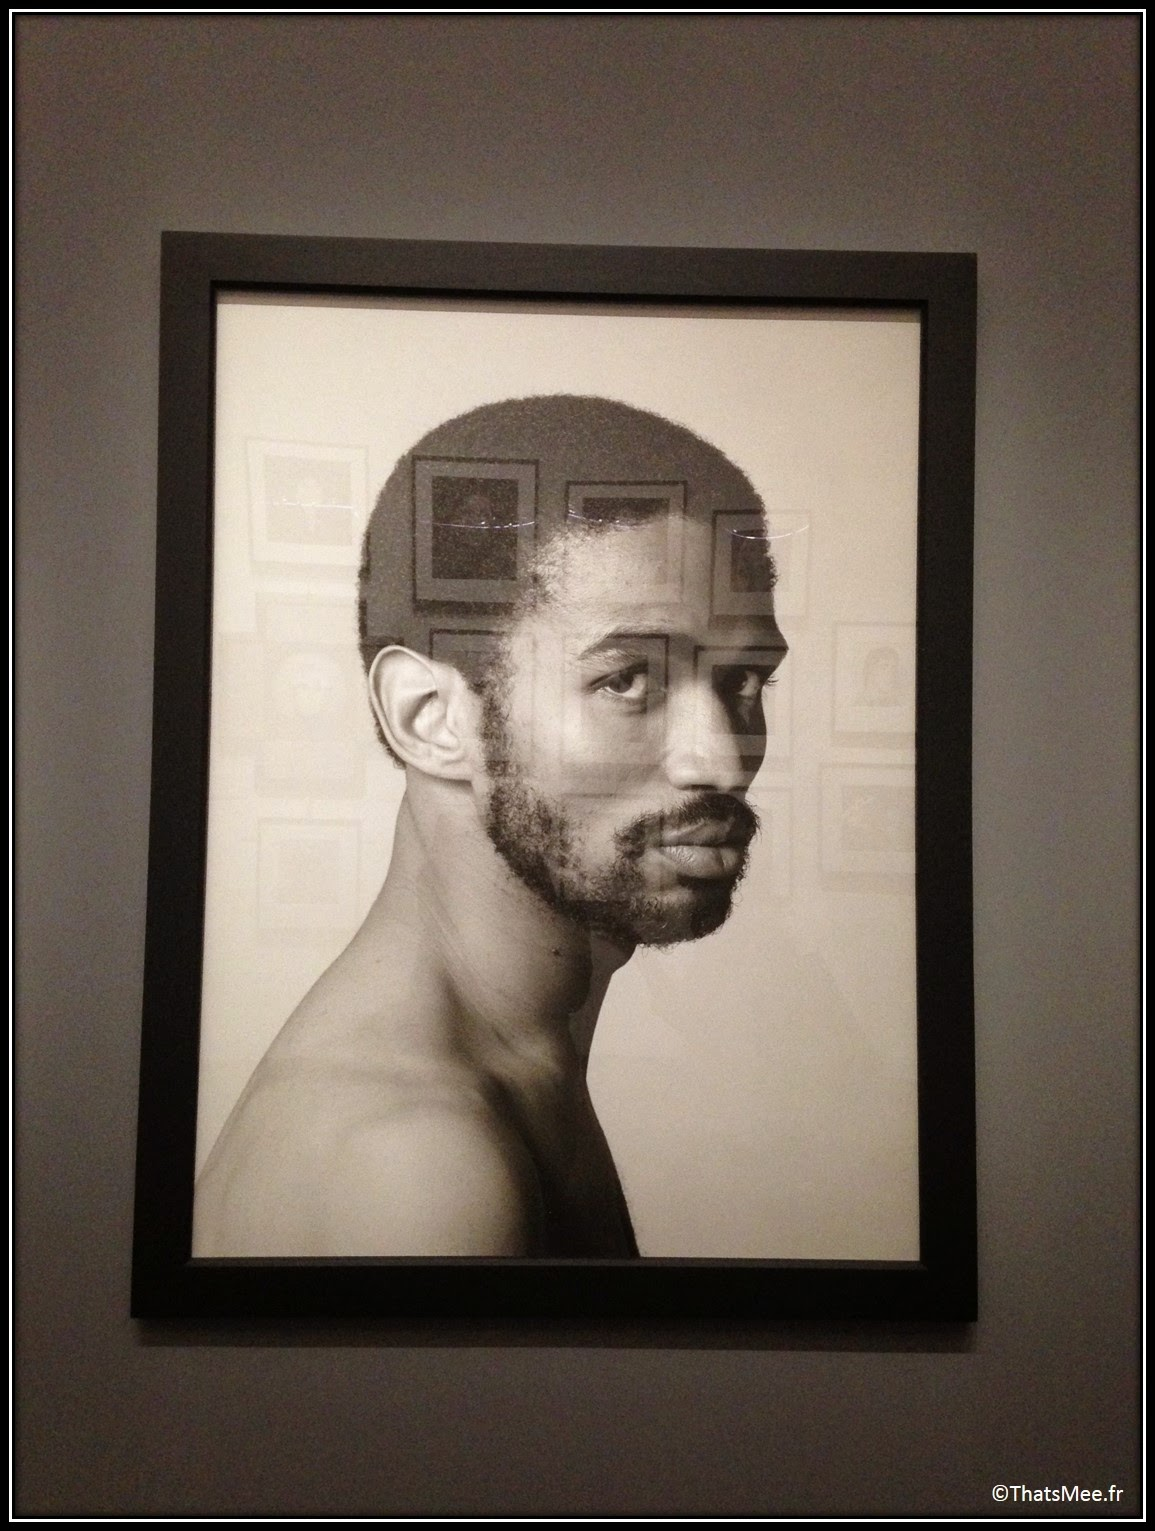 exposition photographie Robert Mapplethorpe photographe américain 70s portrait peau noire gay, expo Mapplethorpe Grand Palais Paris 2014